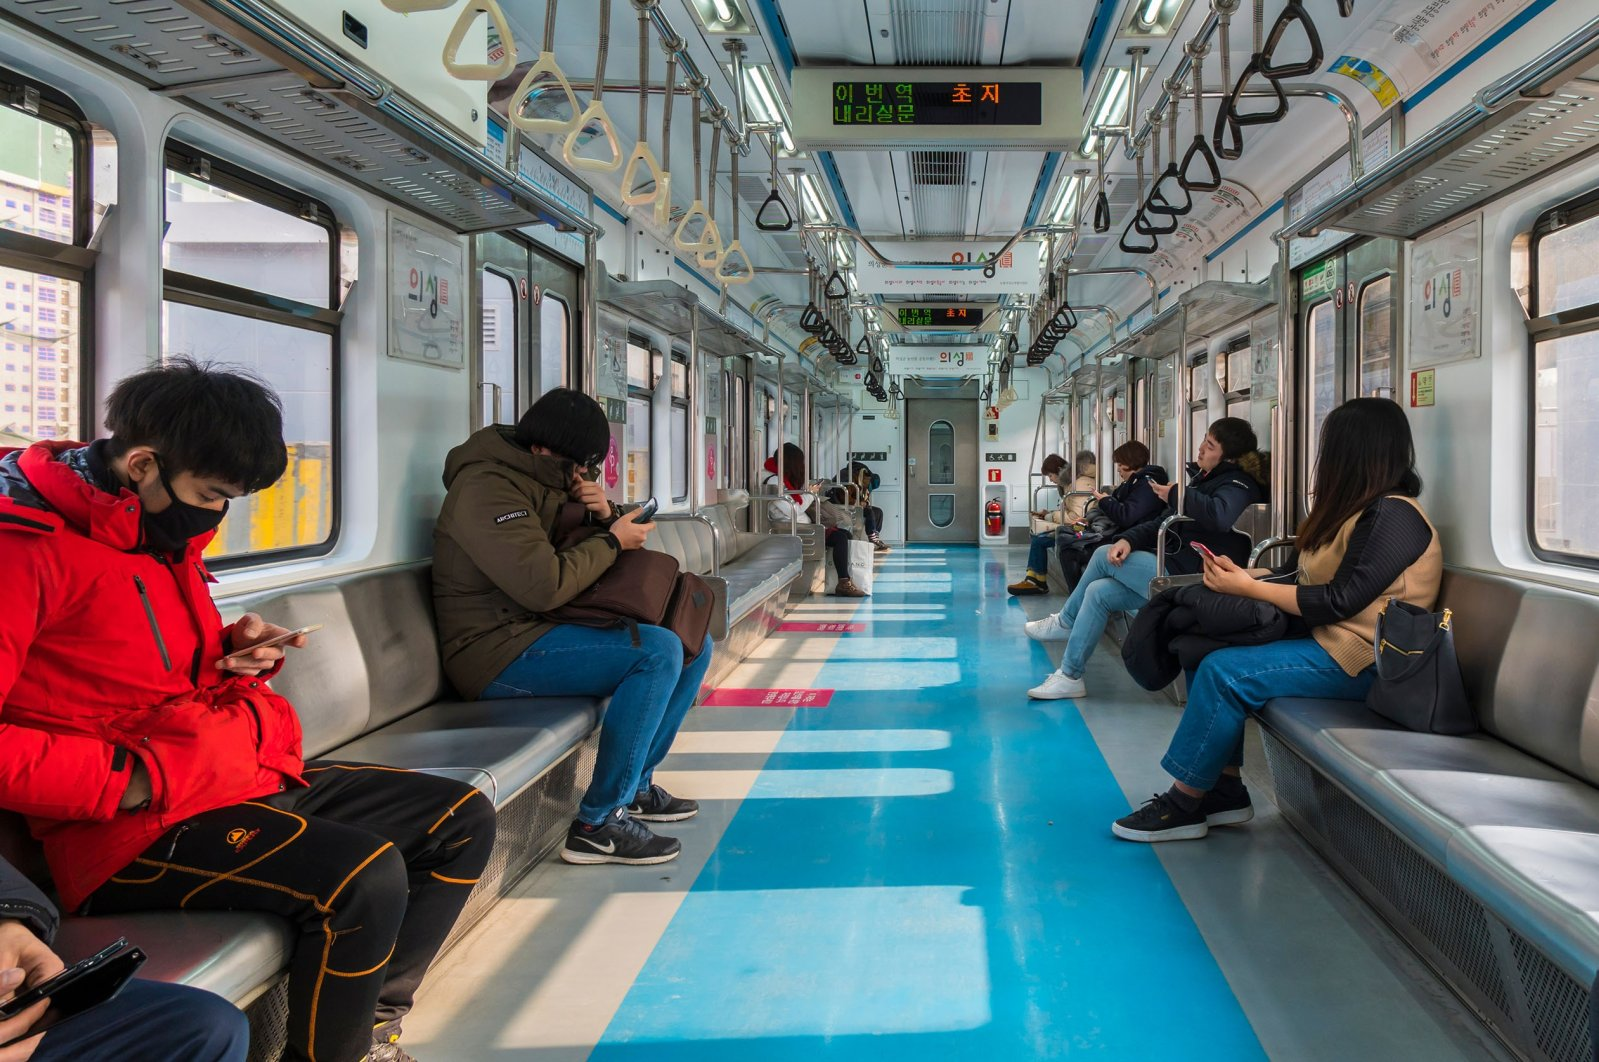 People check their smartphones in a subway, Seoul, South Korea, Jan. 28, 2018. (Shutterstock Photo)